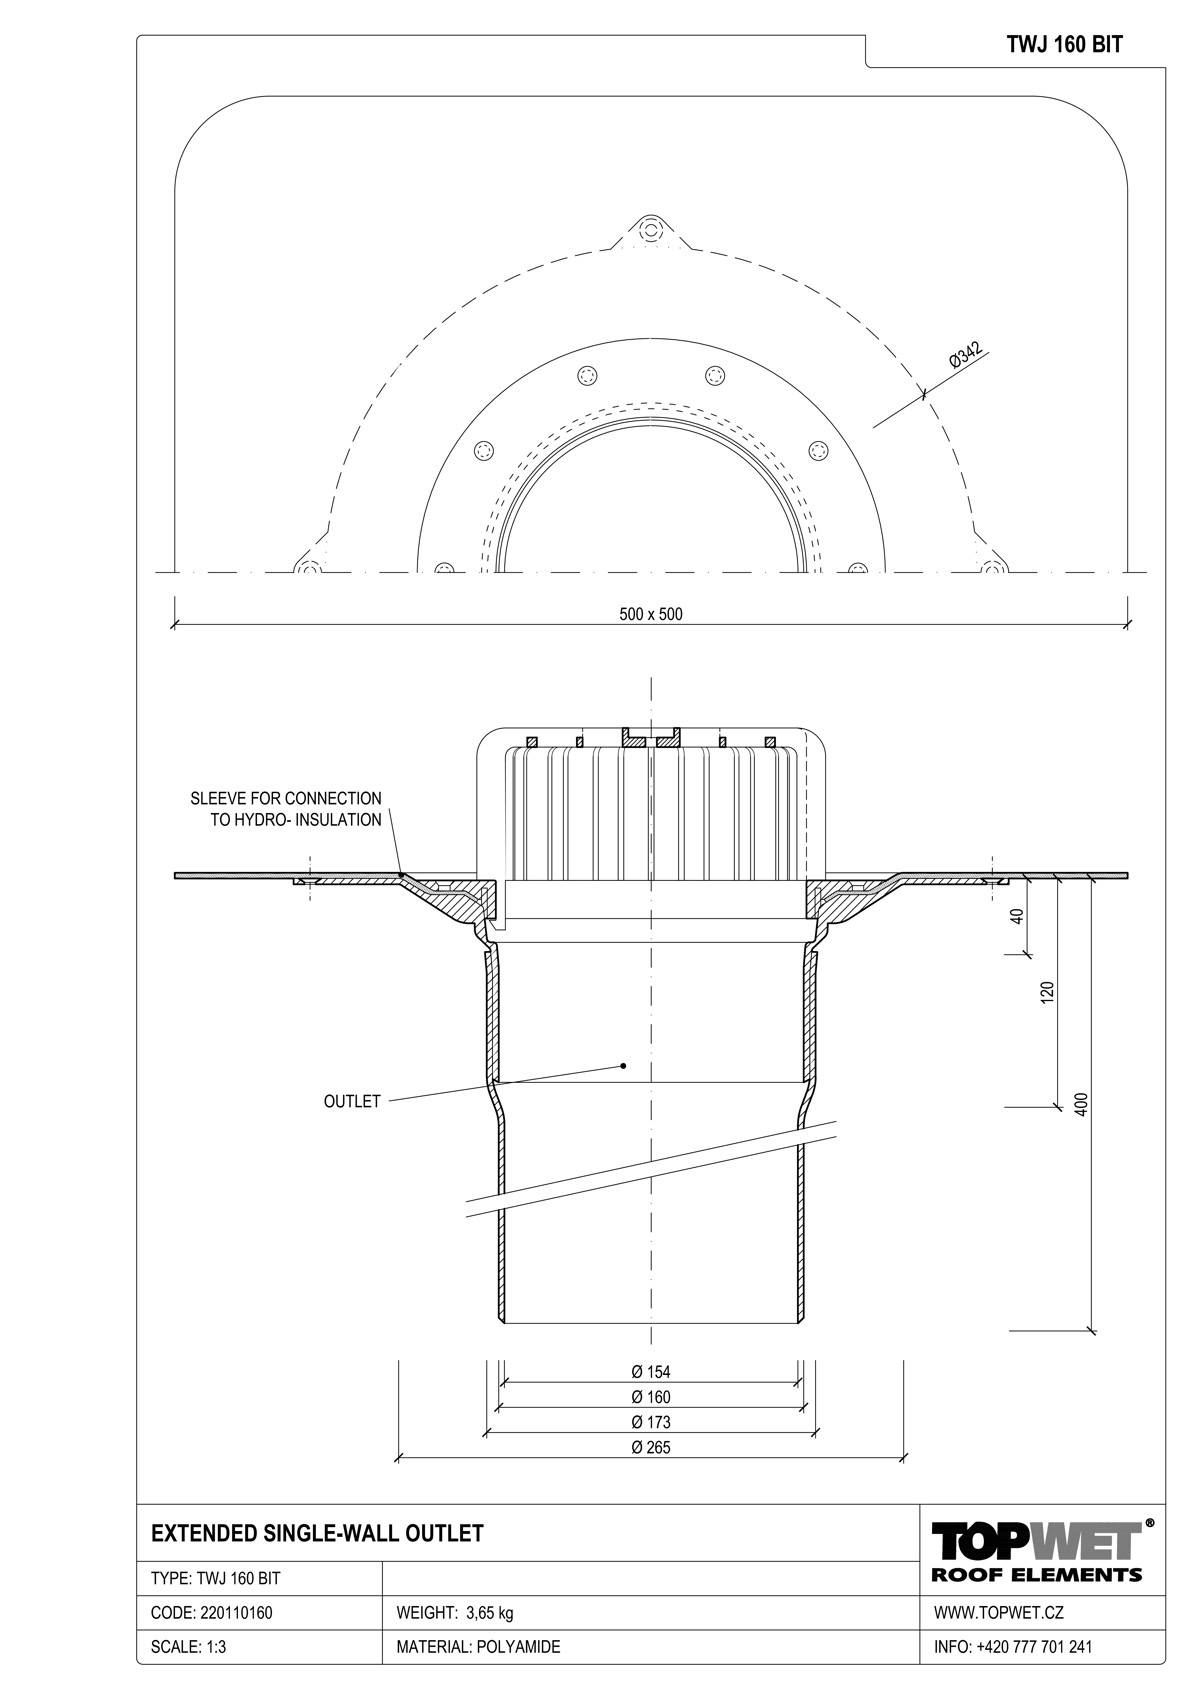 Outlet Drawing At Free For Personal Use Electrical Panel Box Diagram W219 1200x1698 Extended Single Wall Roof Outlets With Integrated Bitumen Sleeve